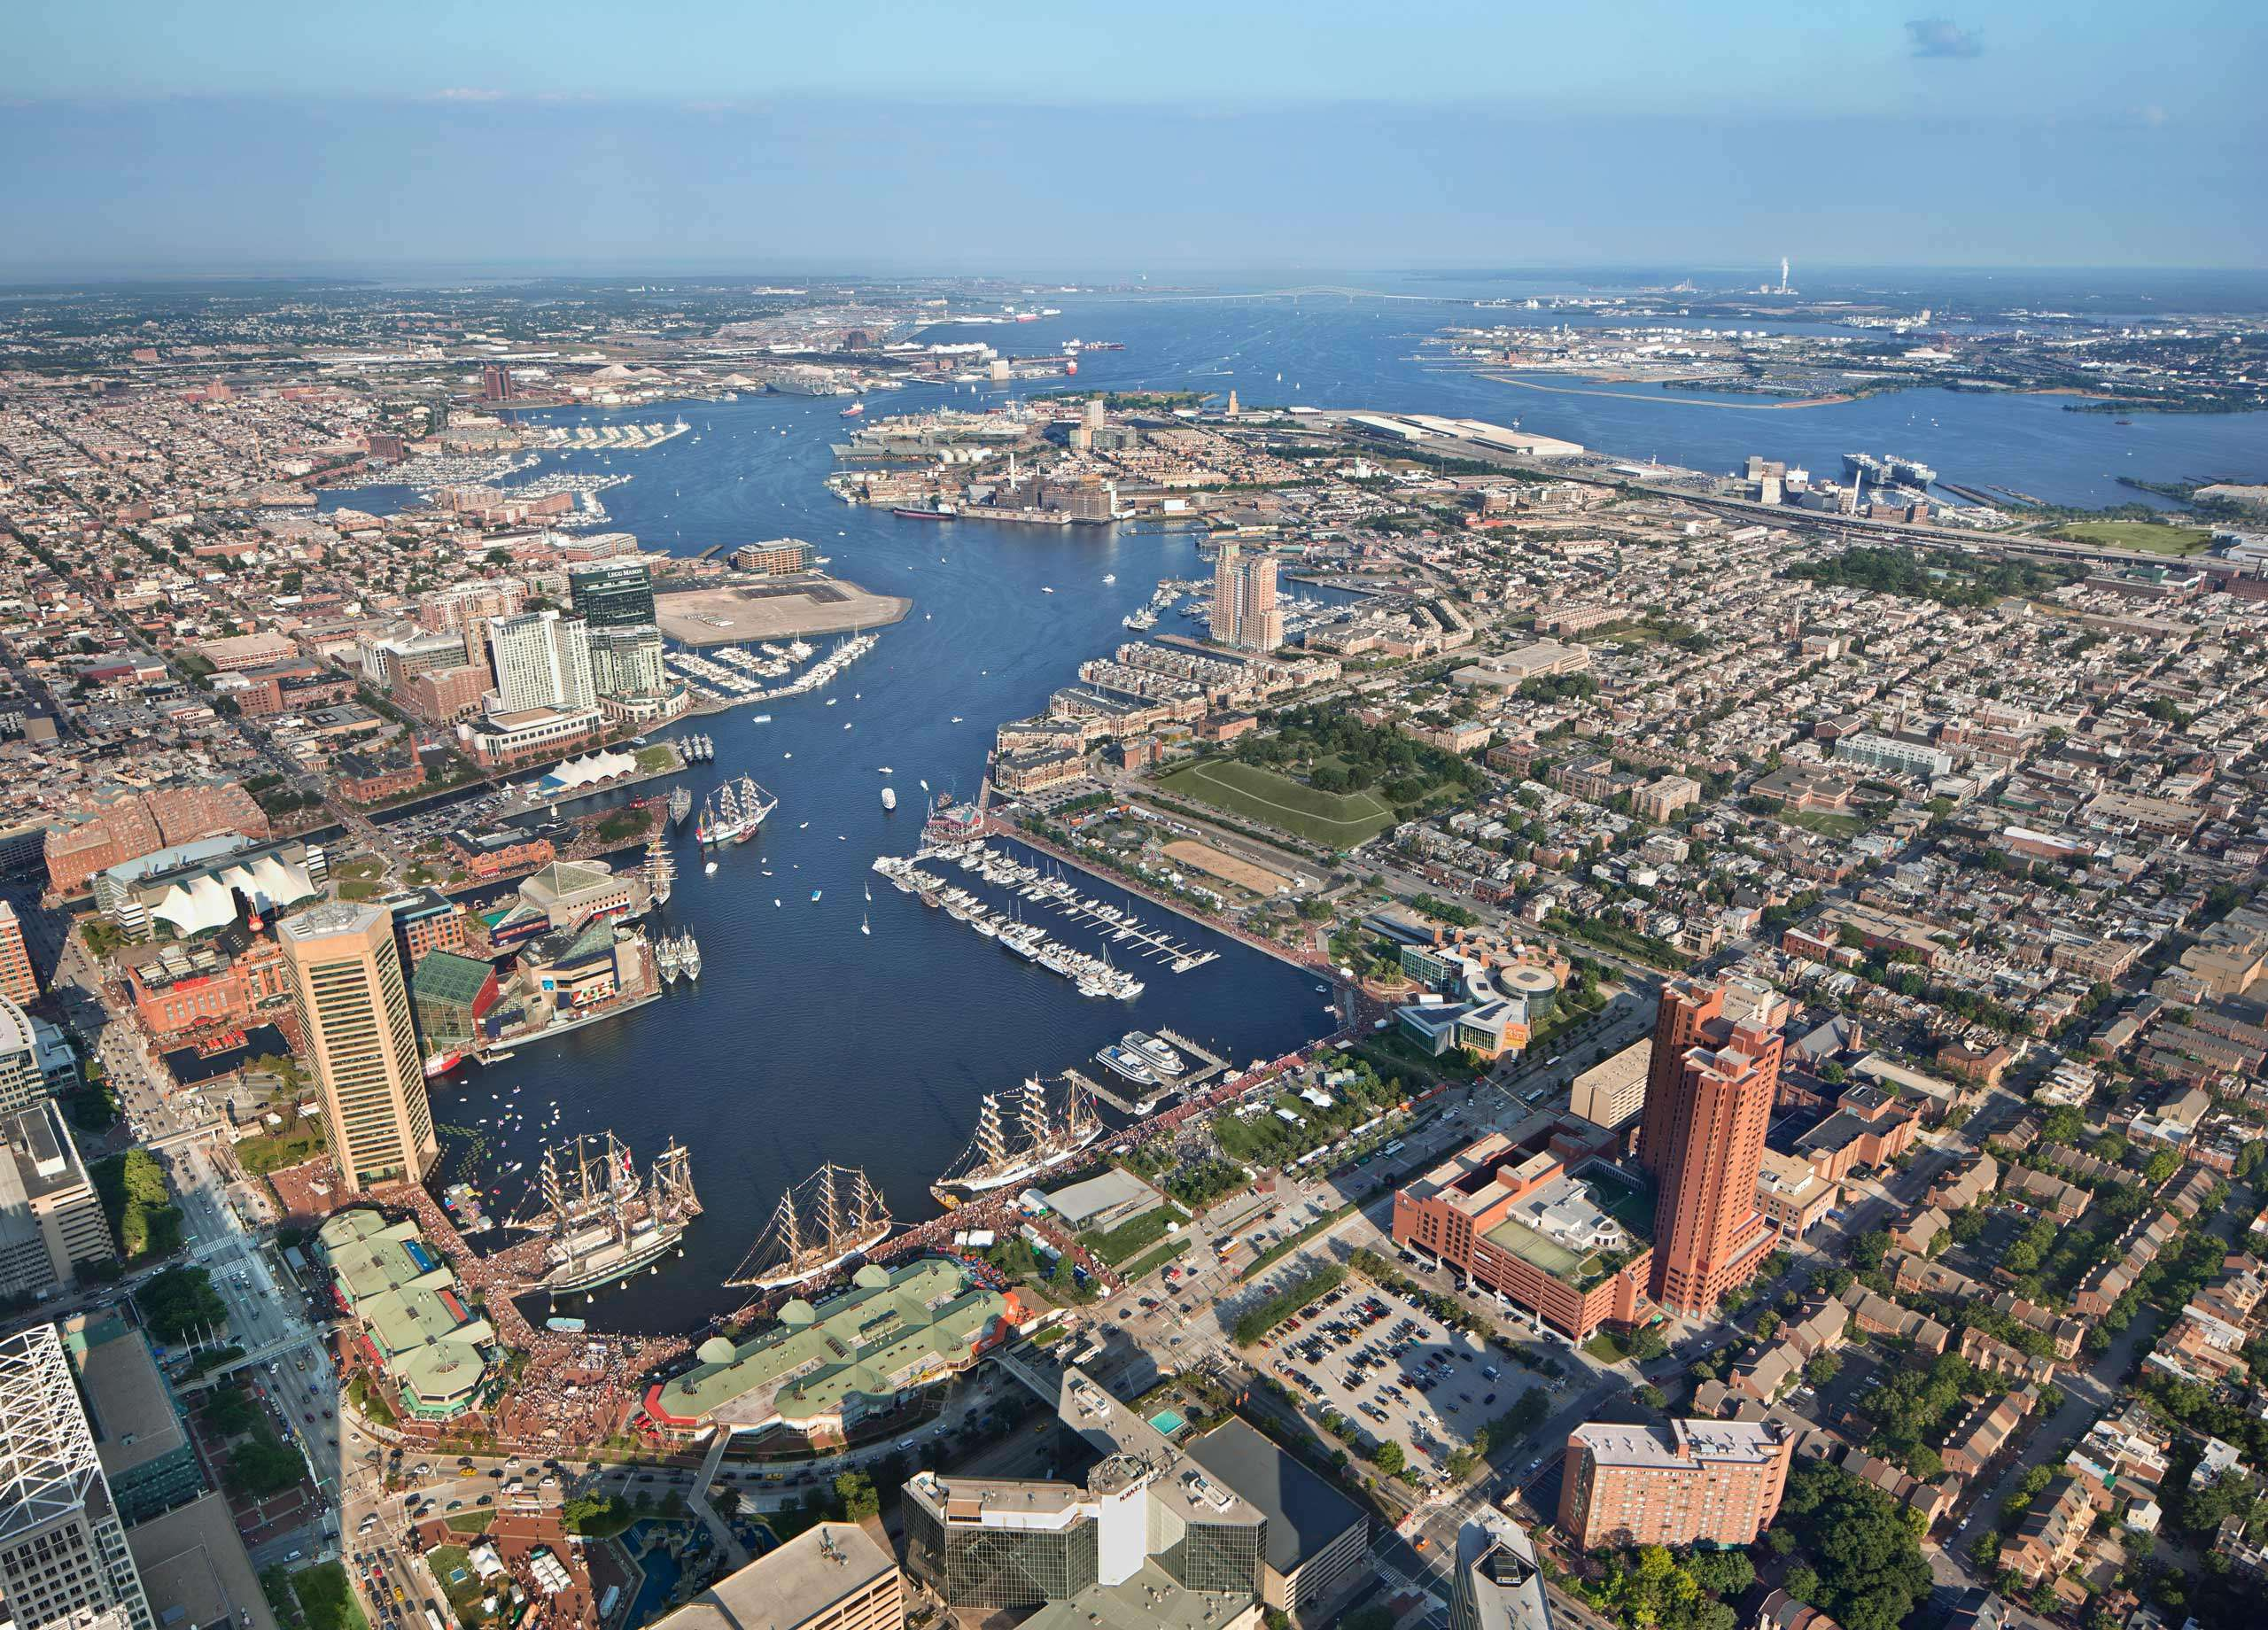 PORTFOLIO - Baltimore - Skylines #6 and Baltimore - Attractions  #24 Aerial View of Baltimore's Inner Harbor PCG698